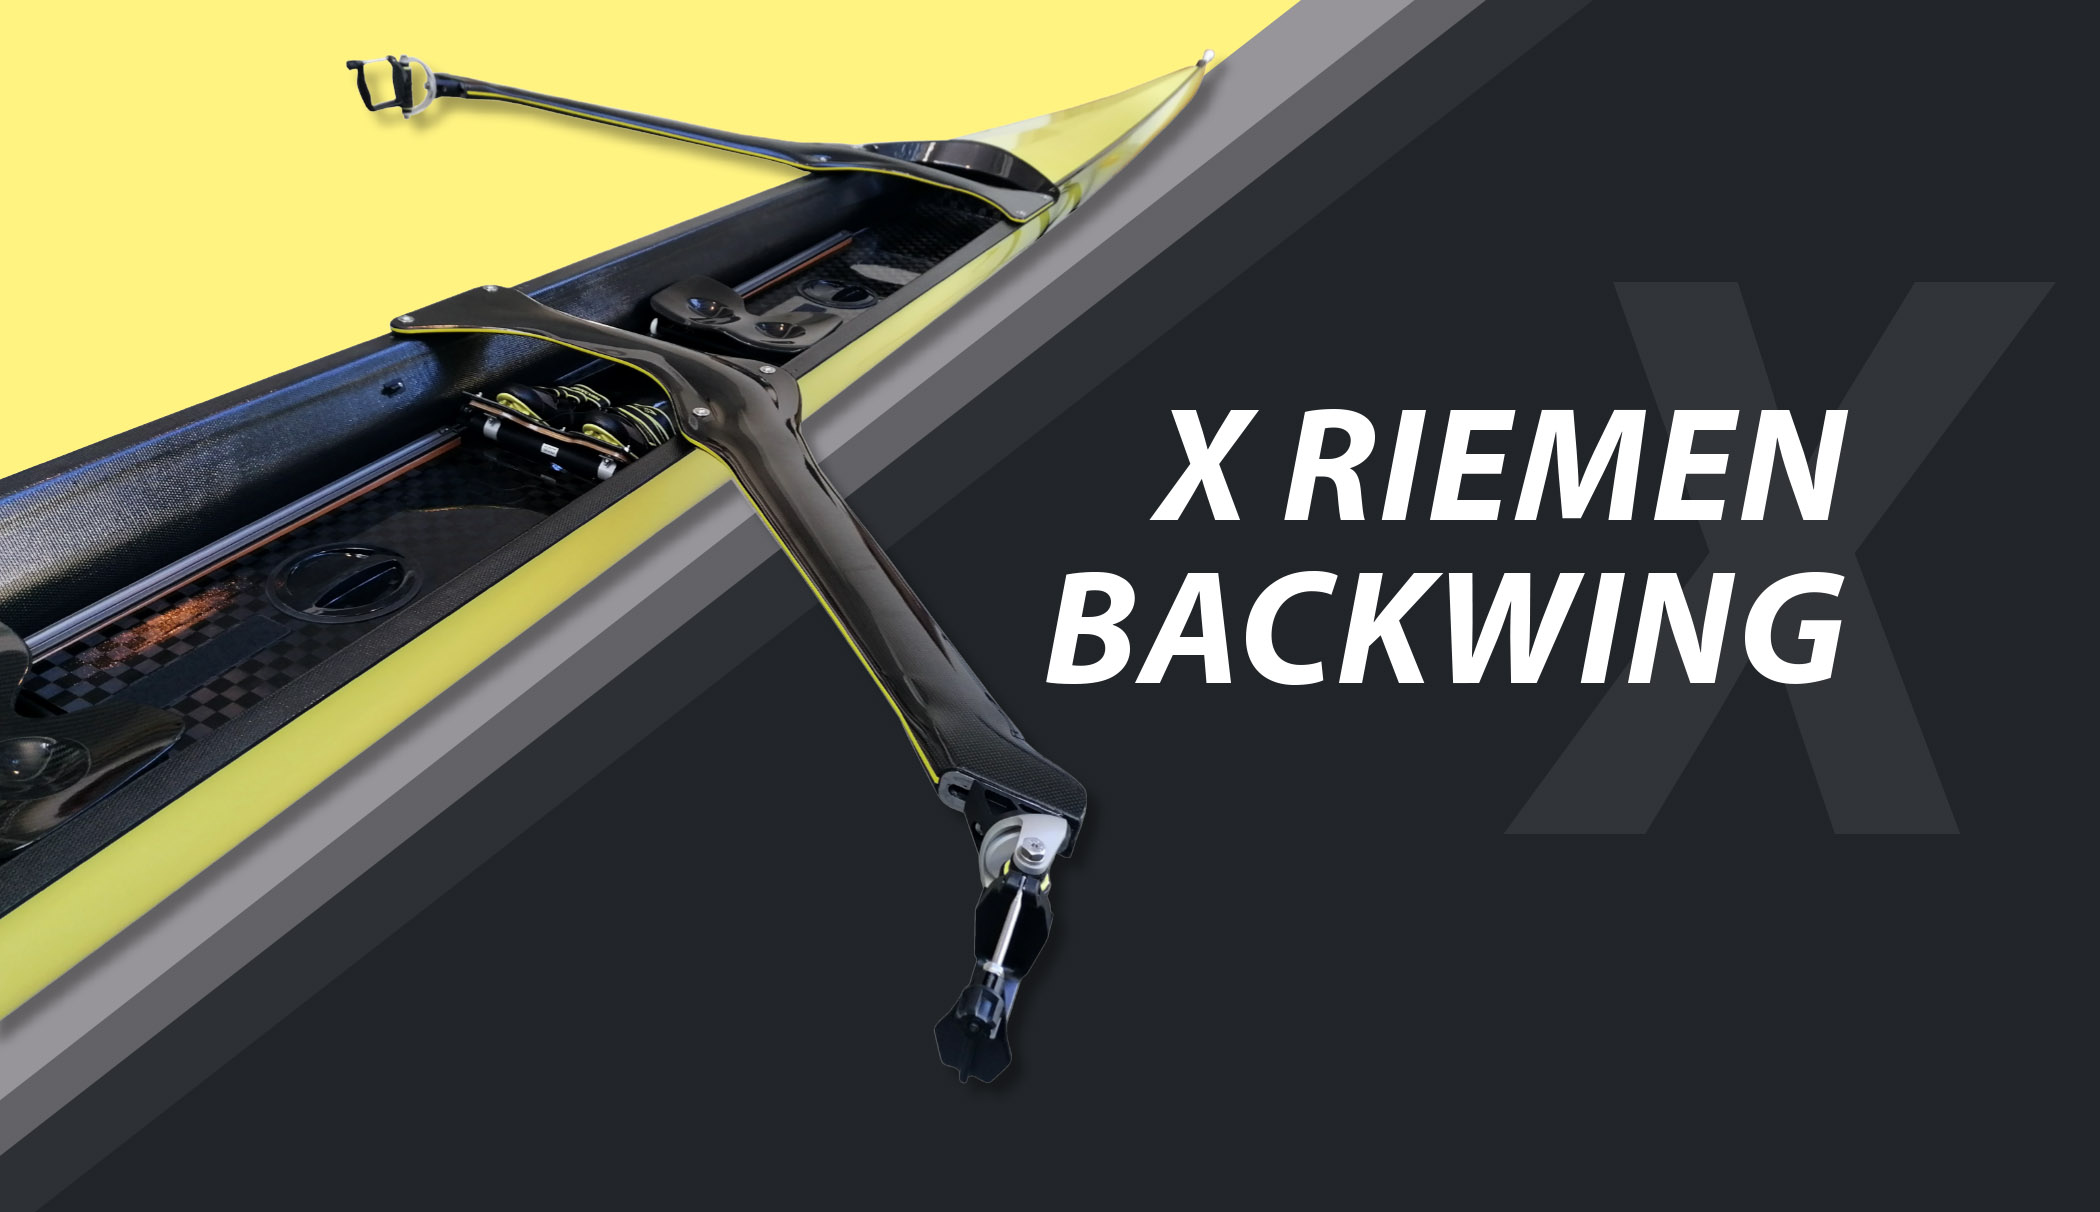 X Riemen Backwing